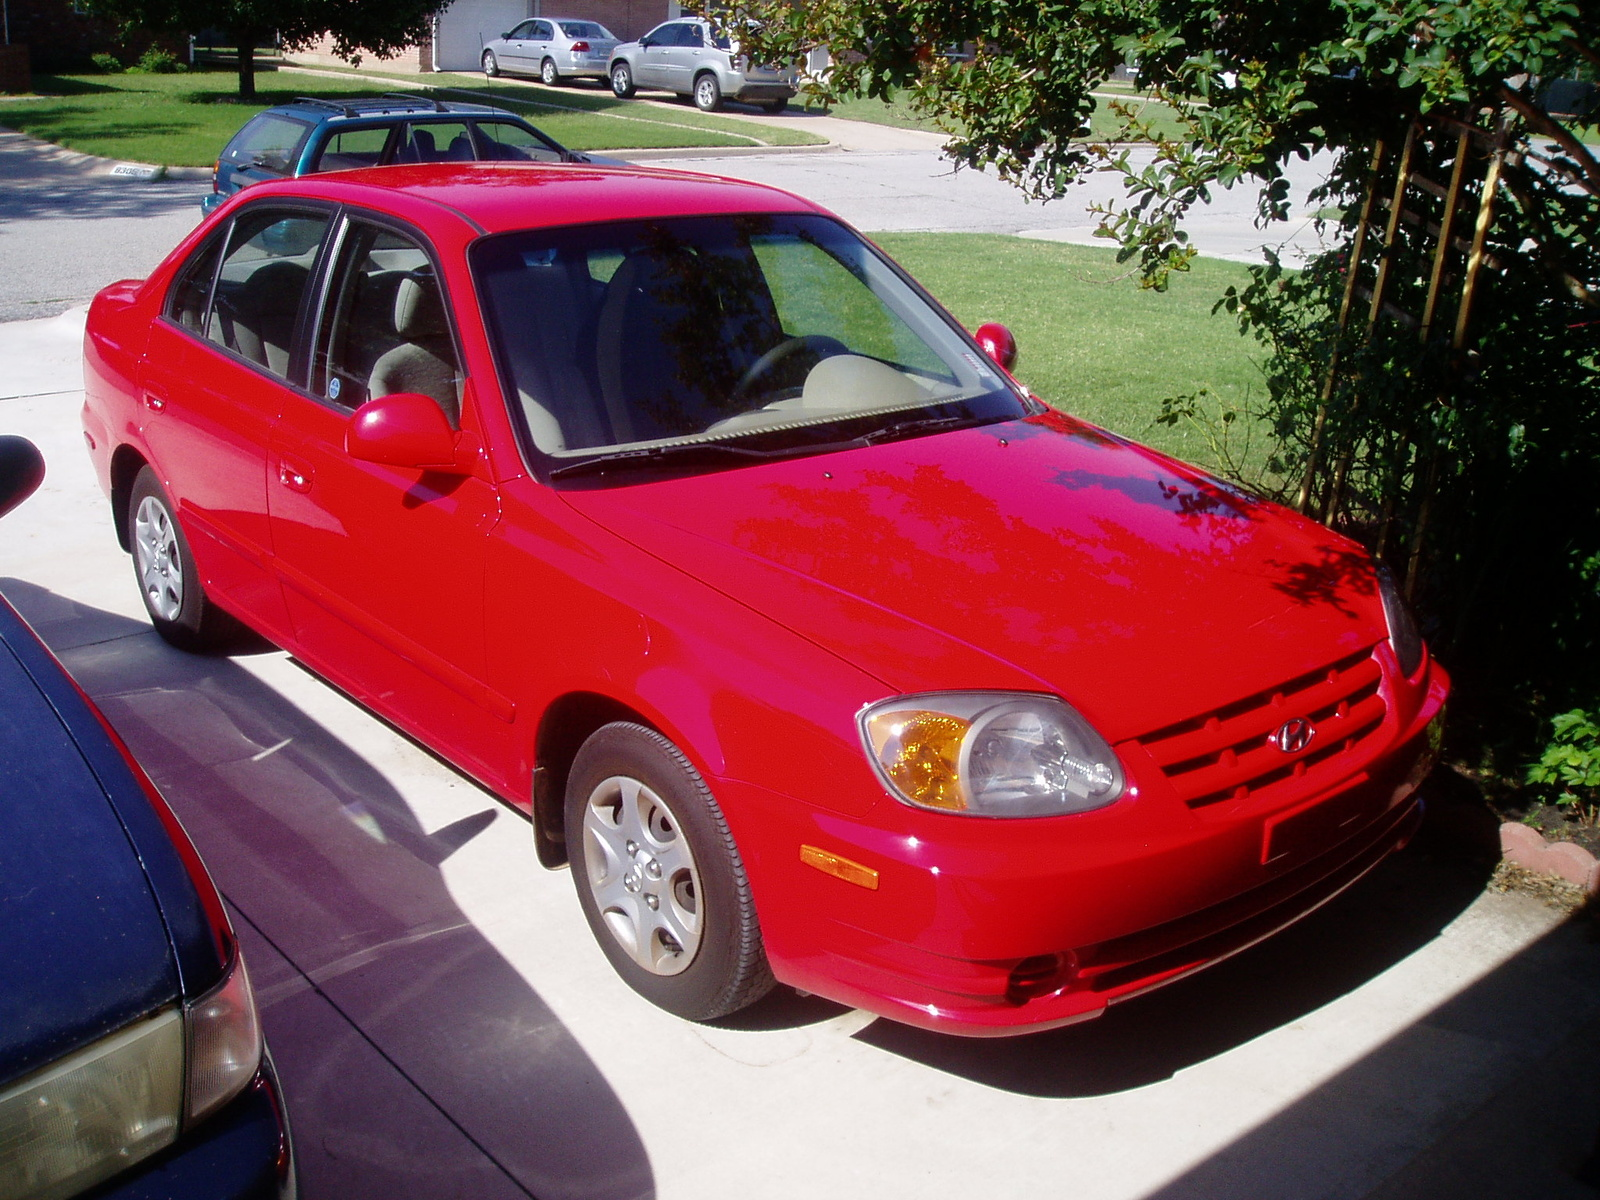 Picture of 2005 Hyundai Accent